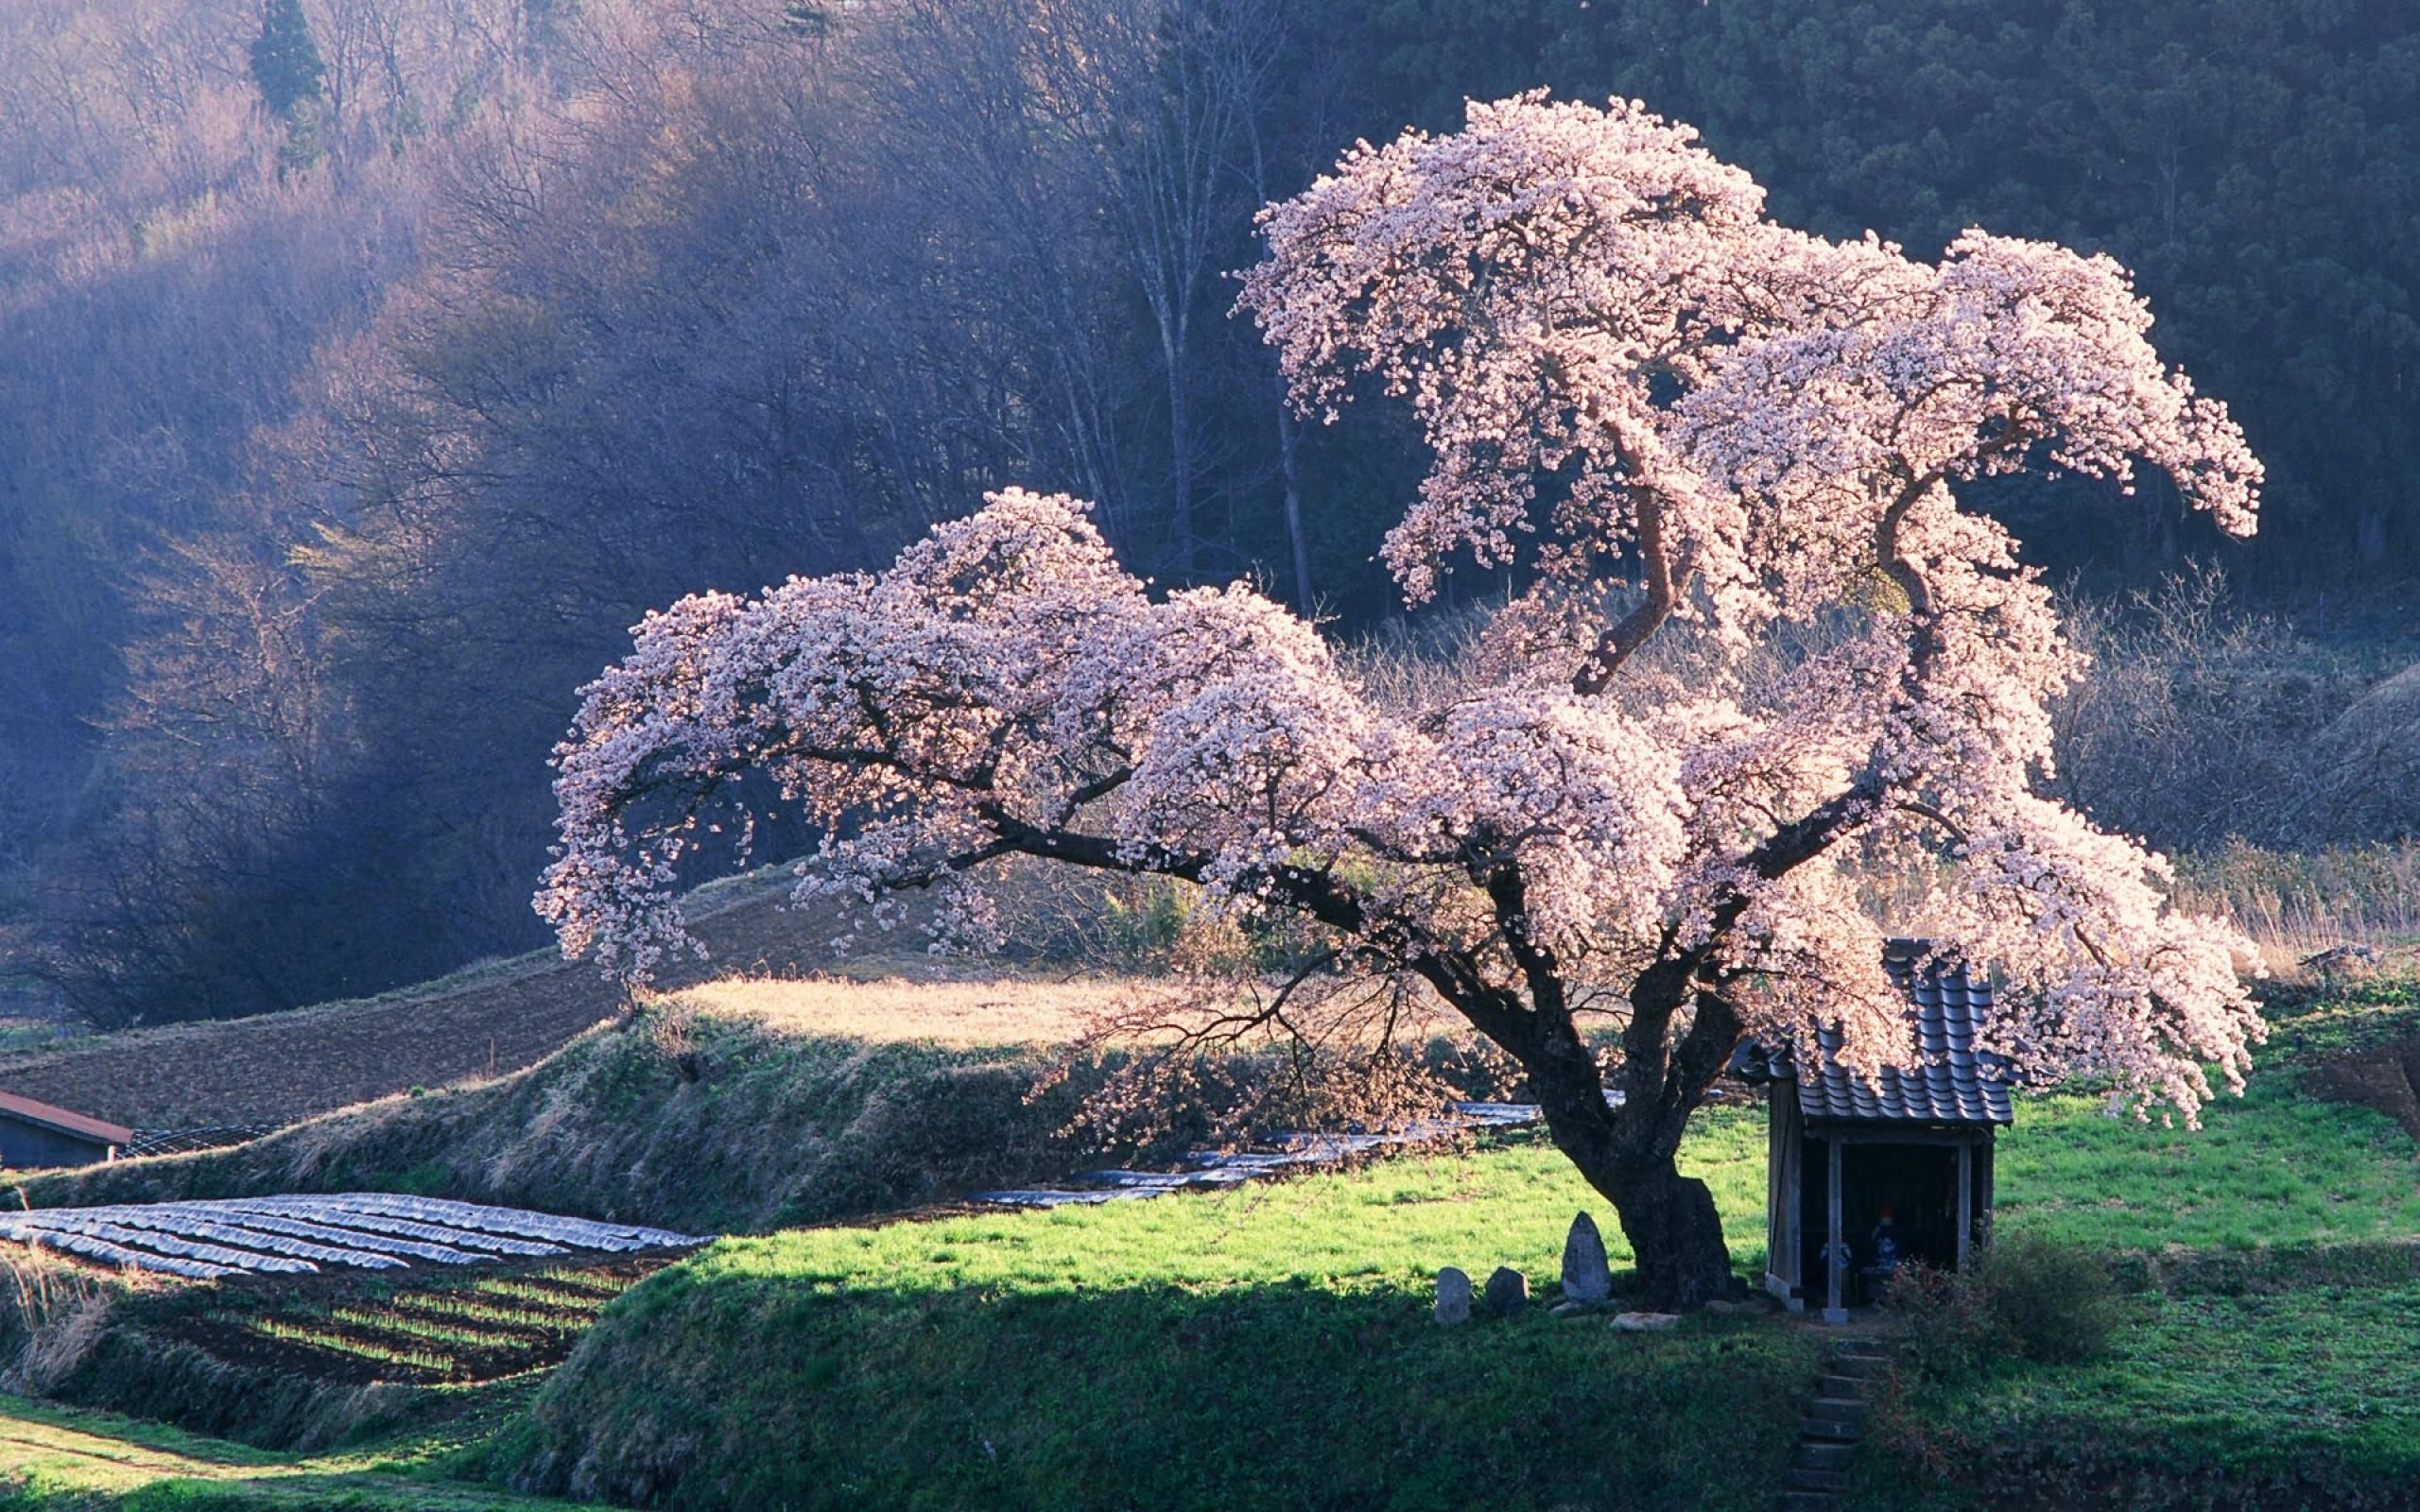 Sakura Nature Japan Landscapes Cherry Blossoms Trees Grass Fields 780088 2560x1600